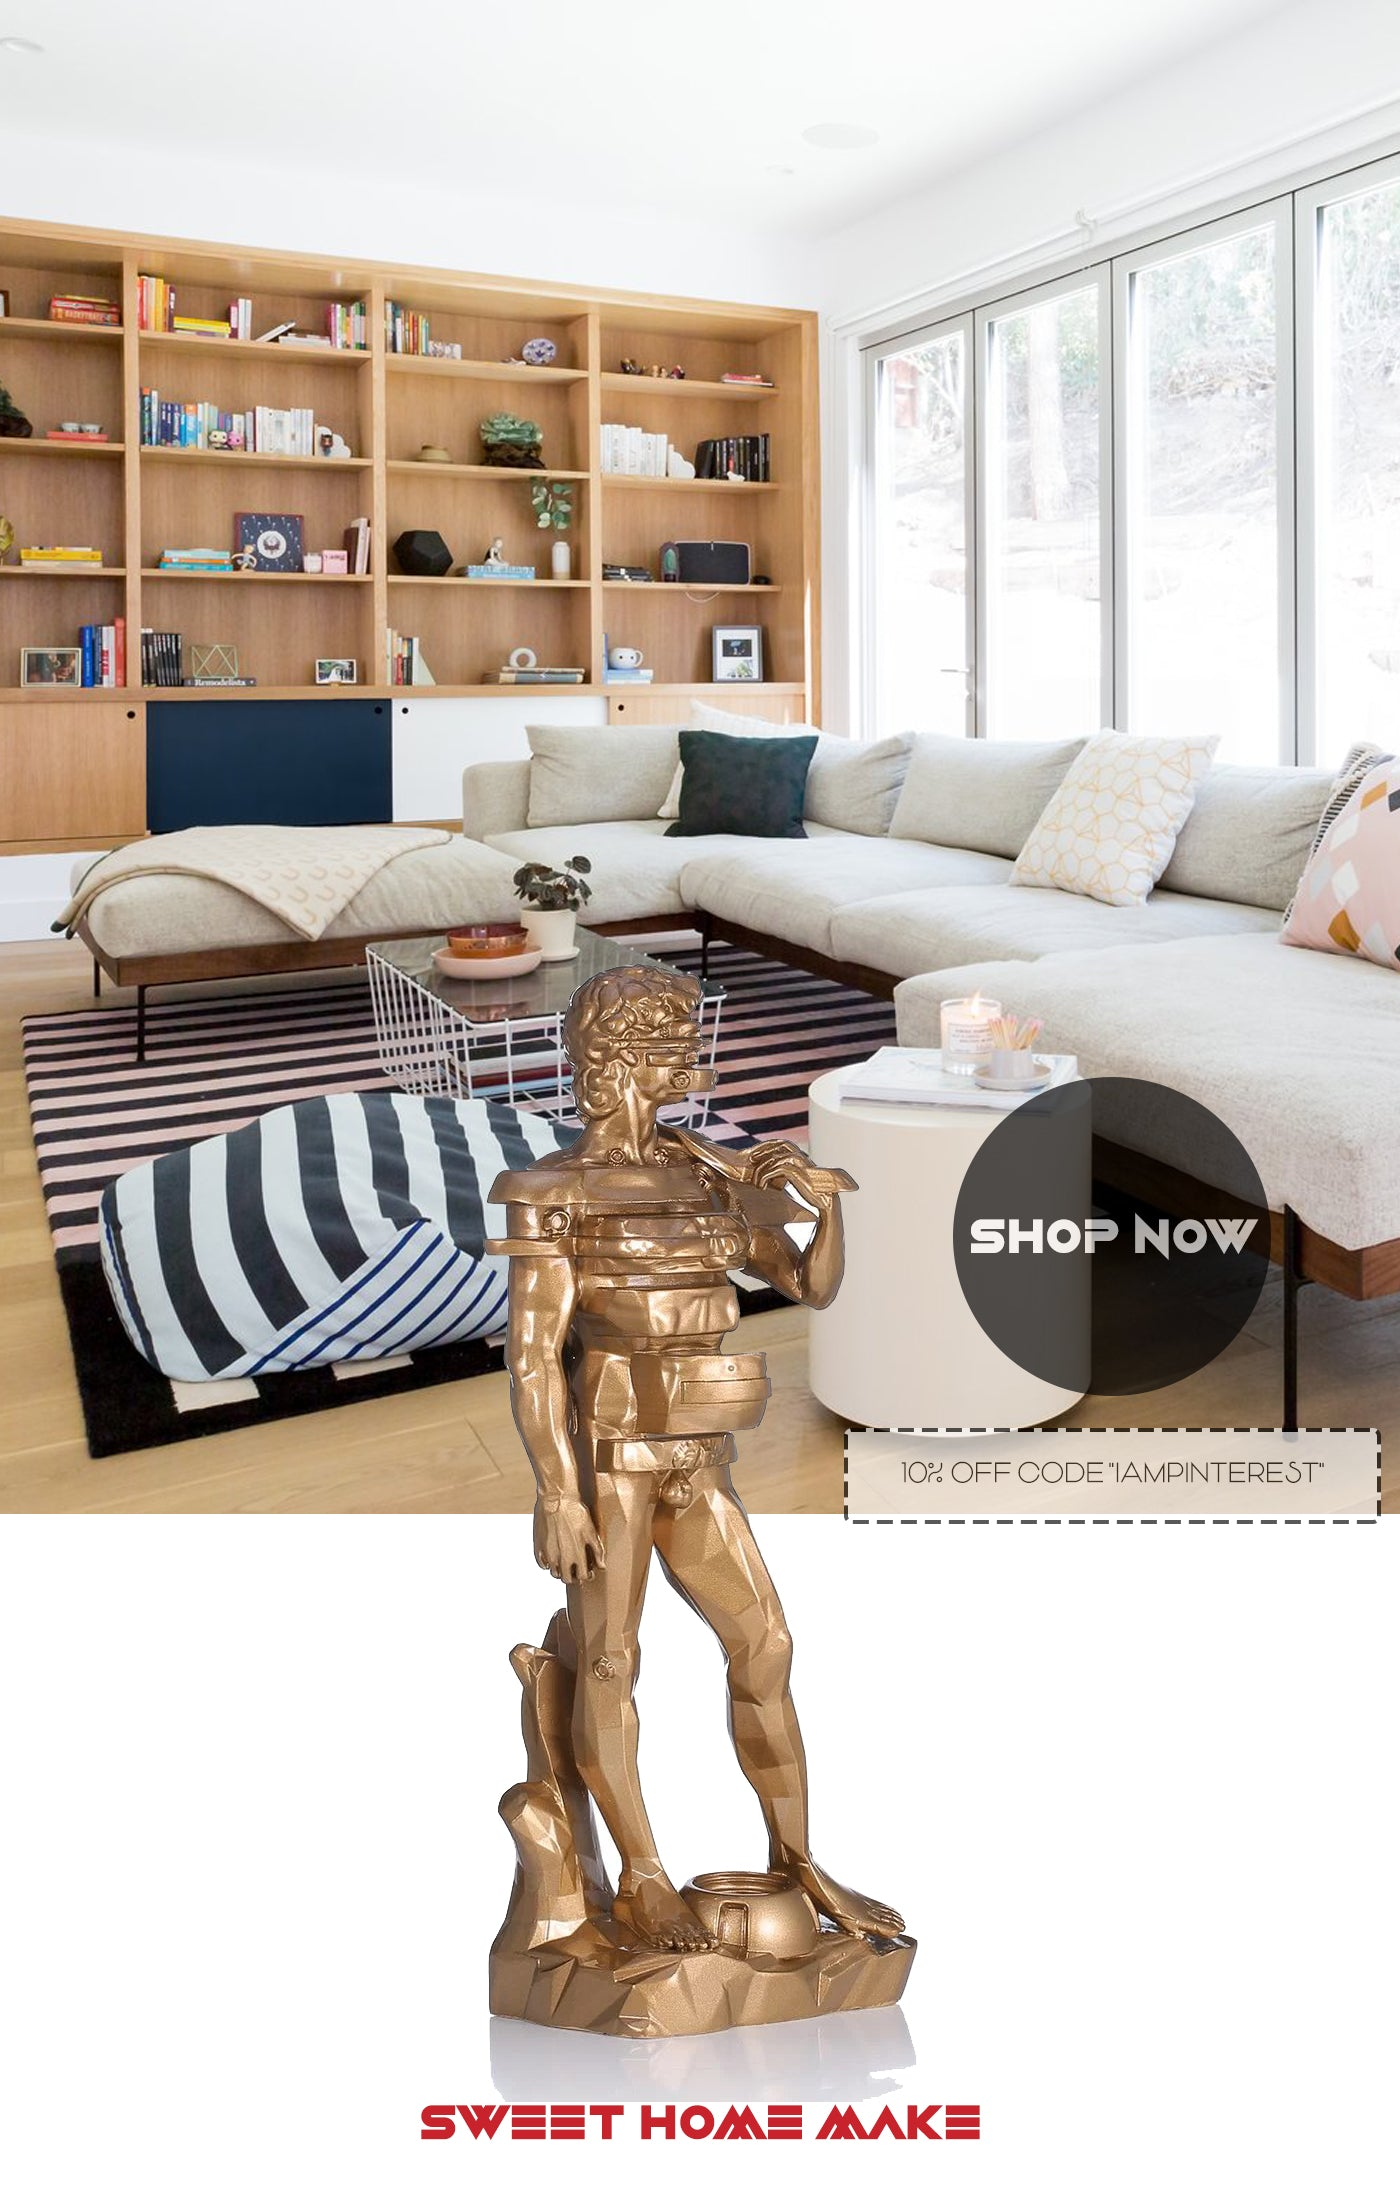 Statue of David Replica Artwork for Home Decor